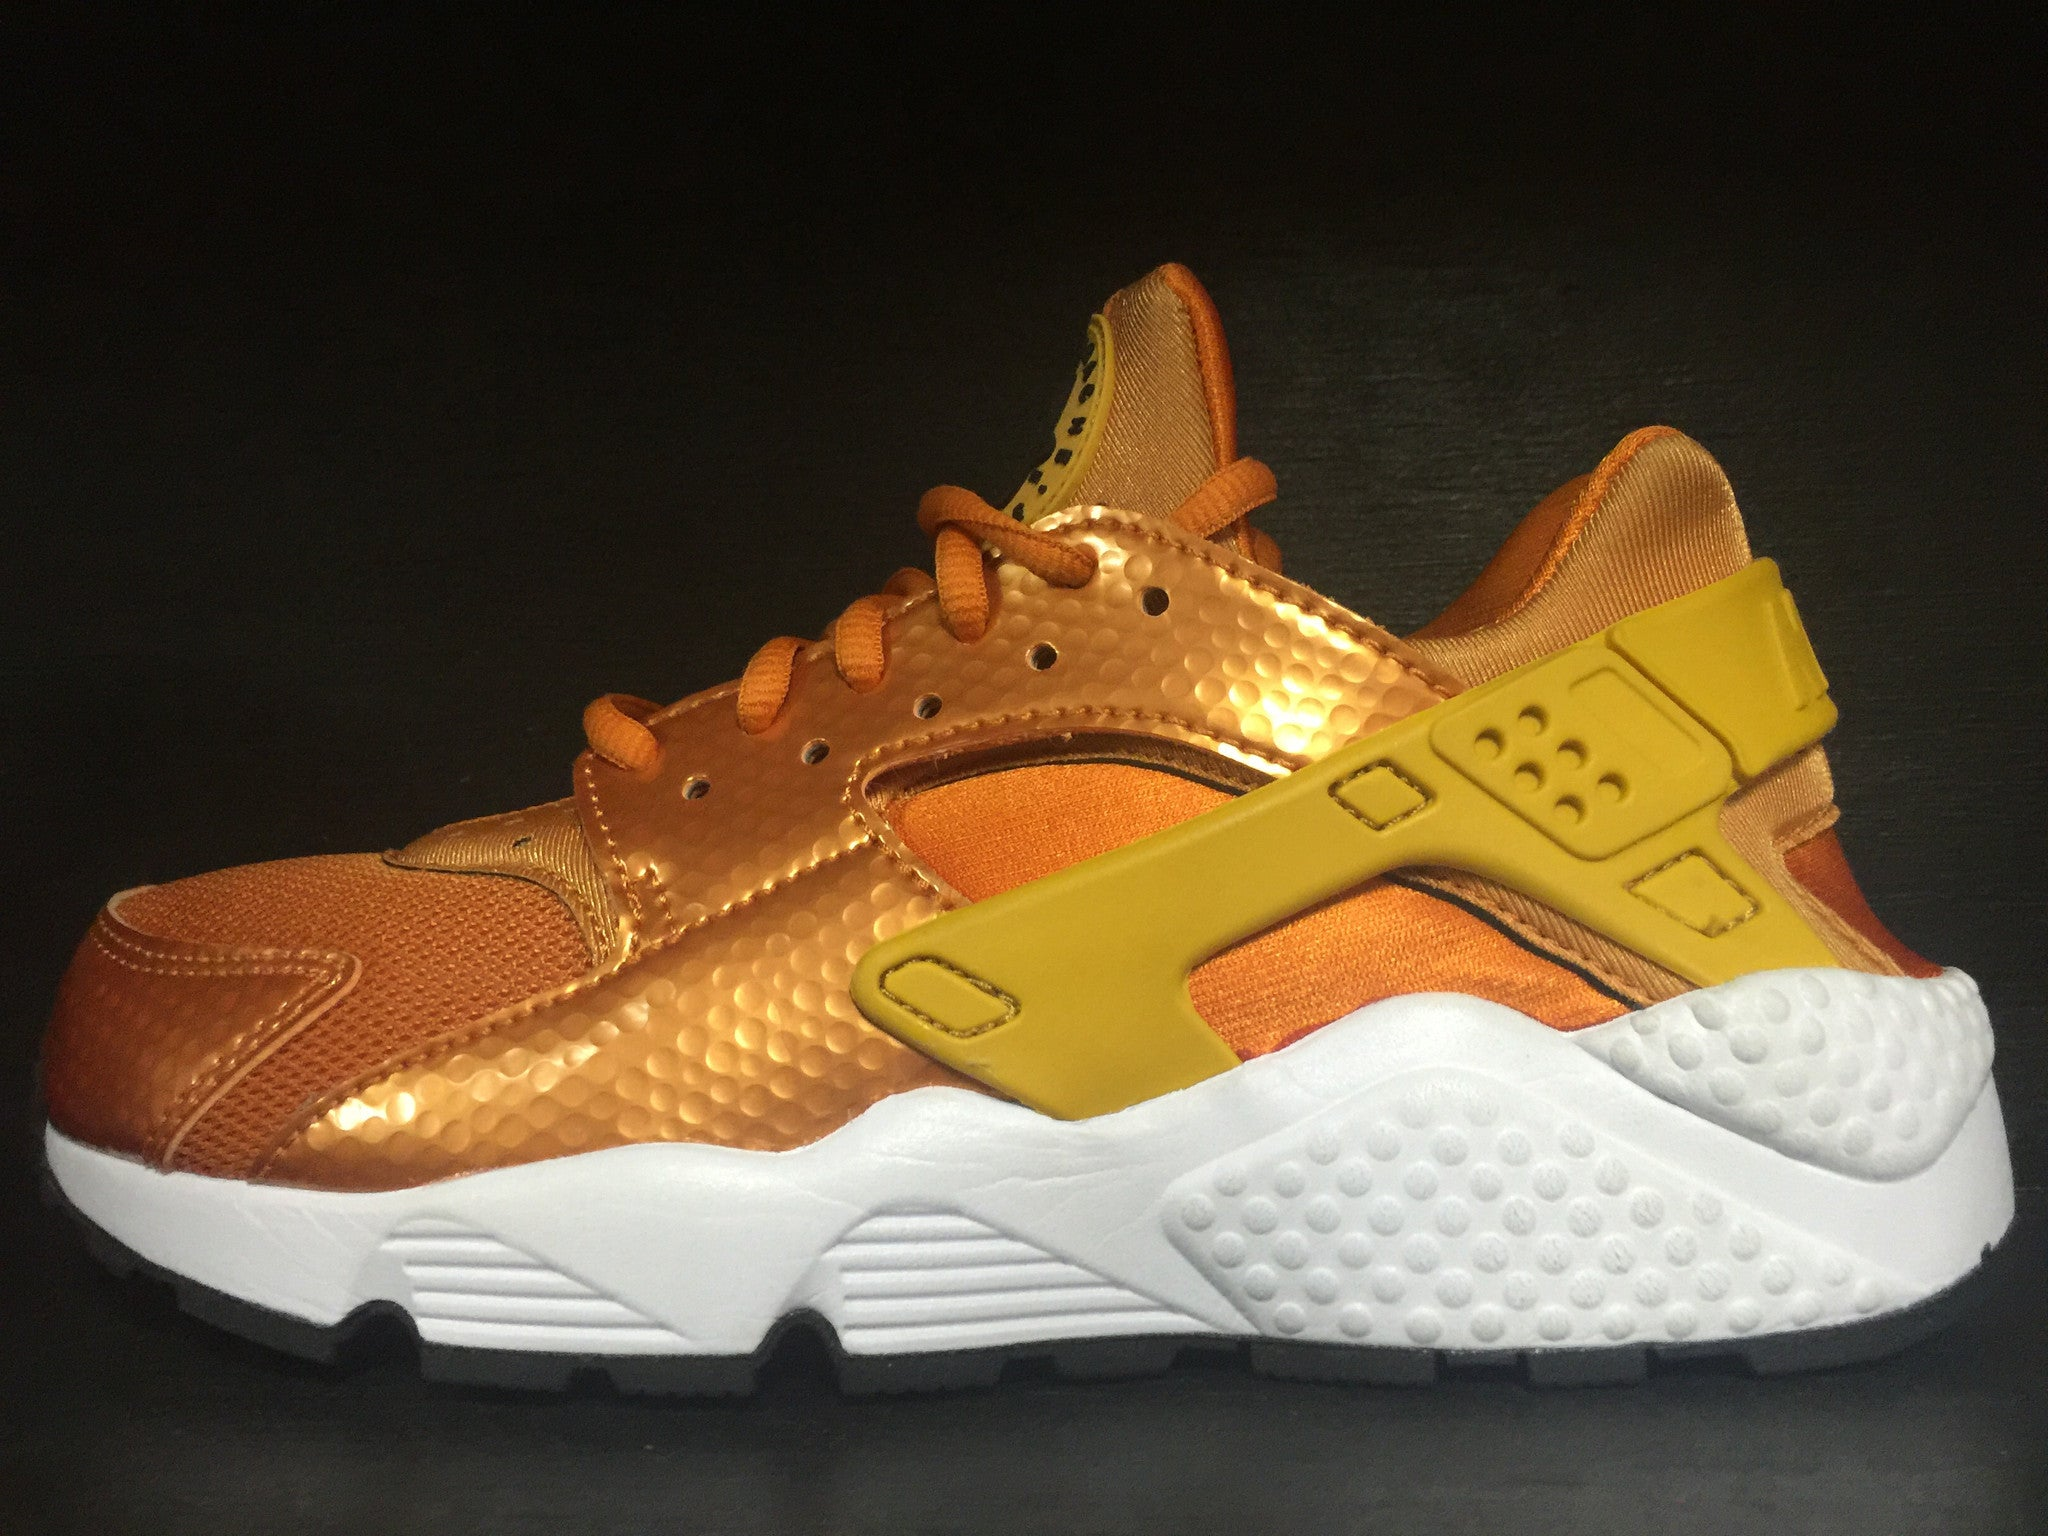 Wmns Air Huarache Run 'Sunset'